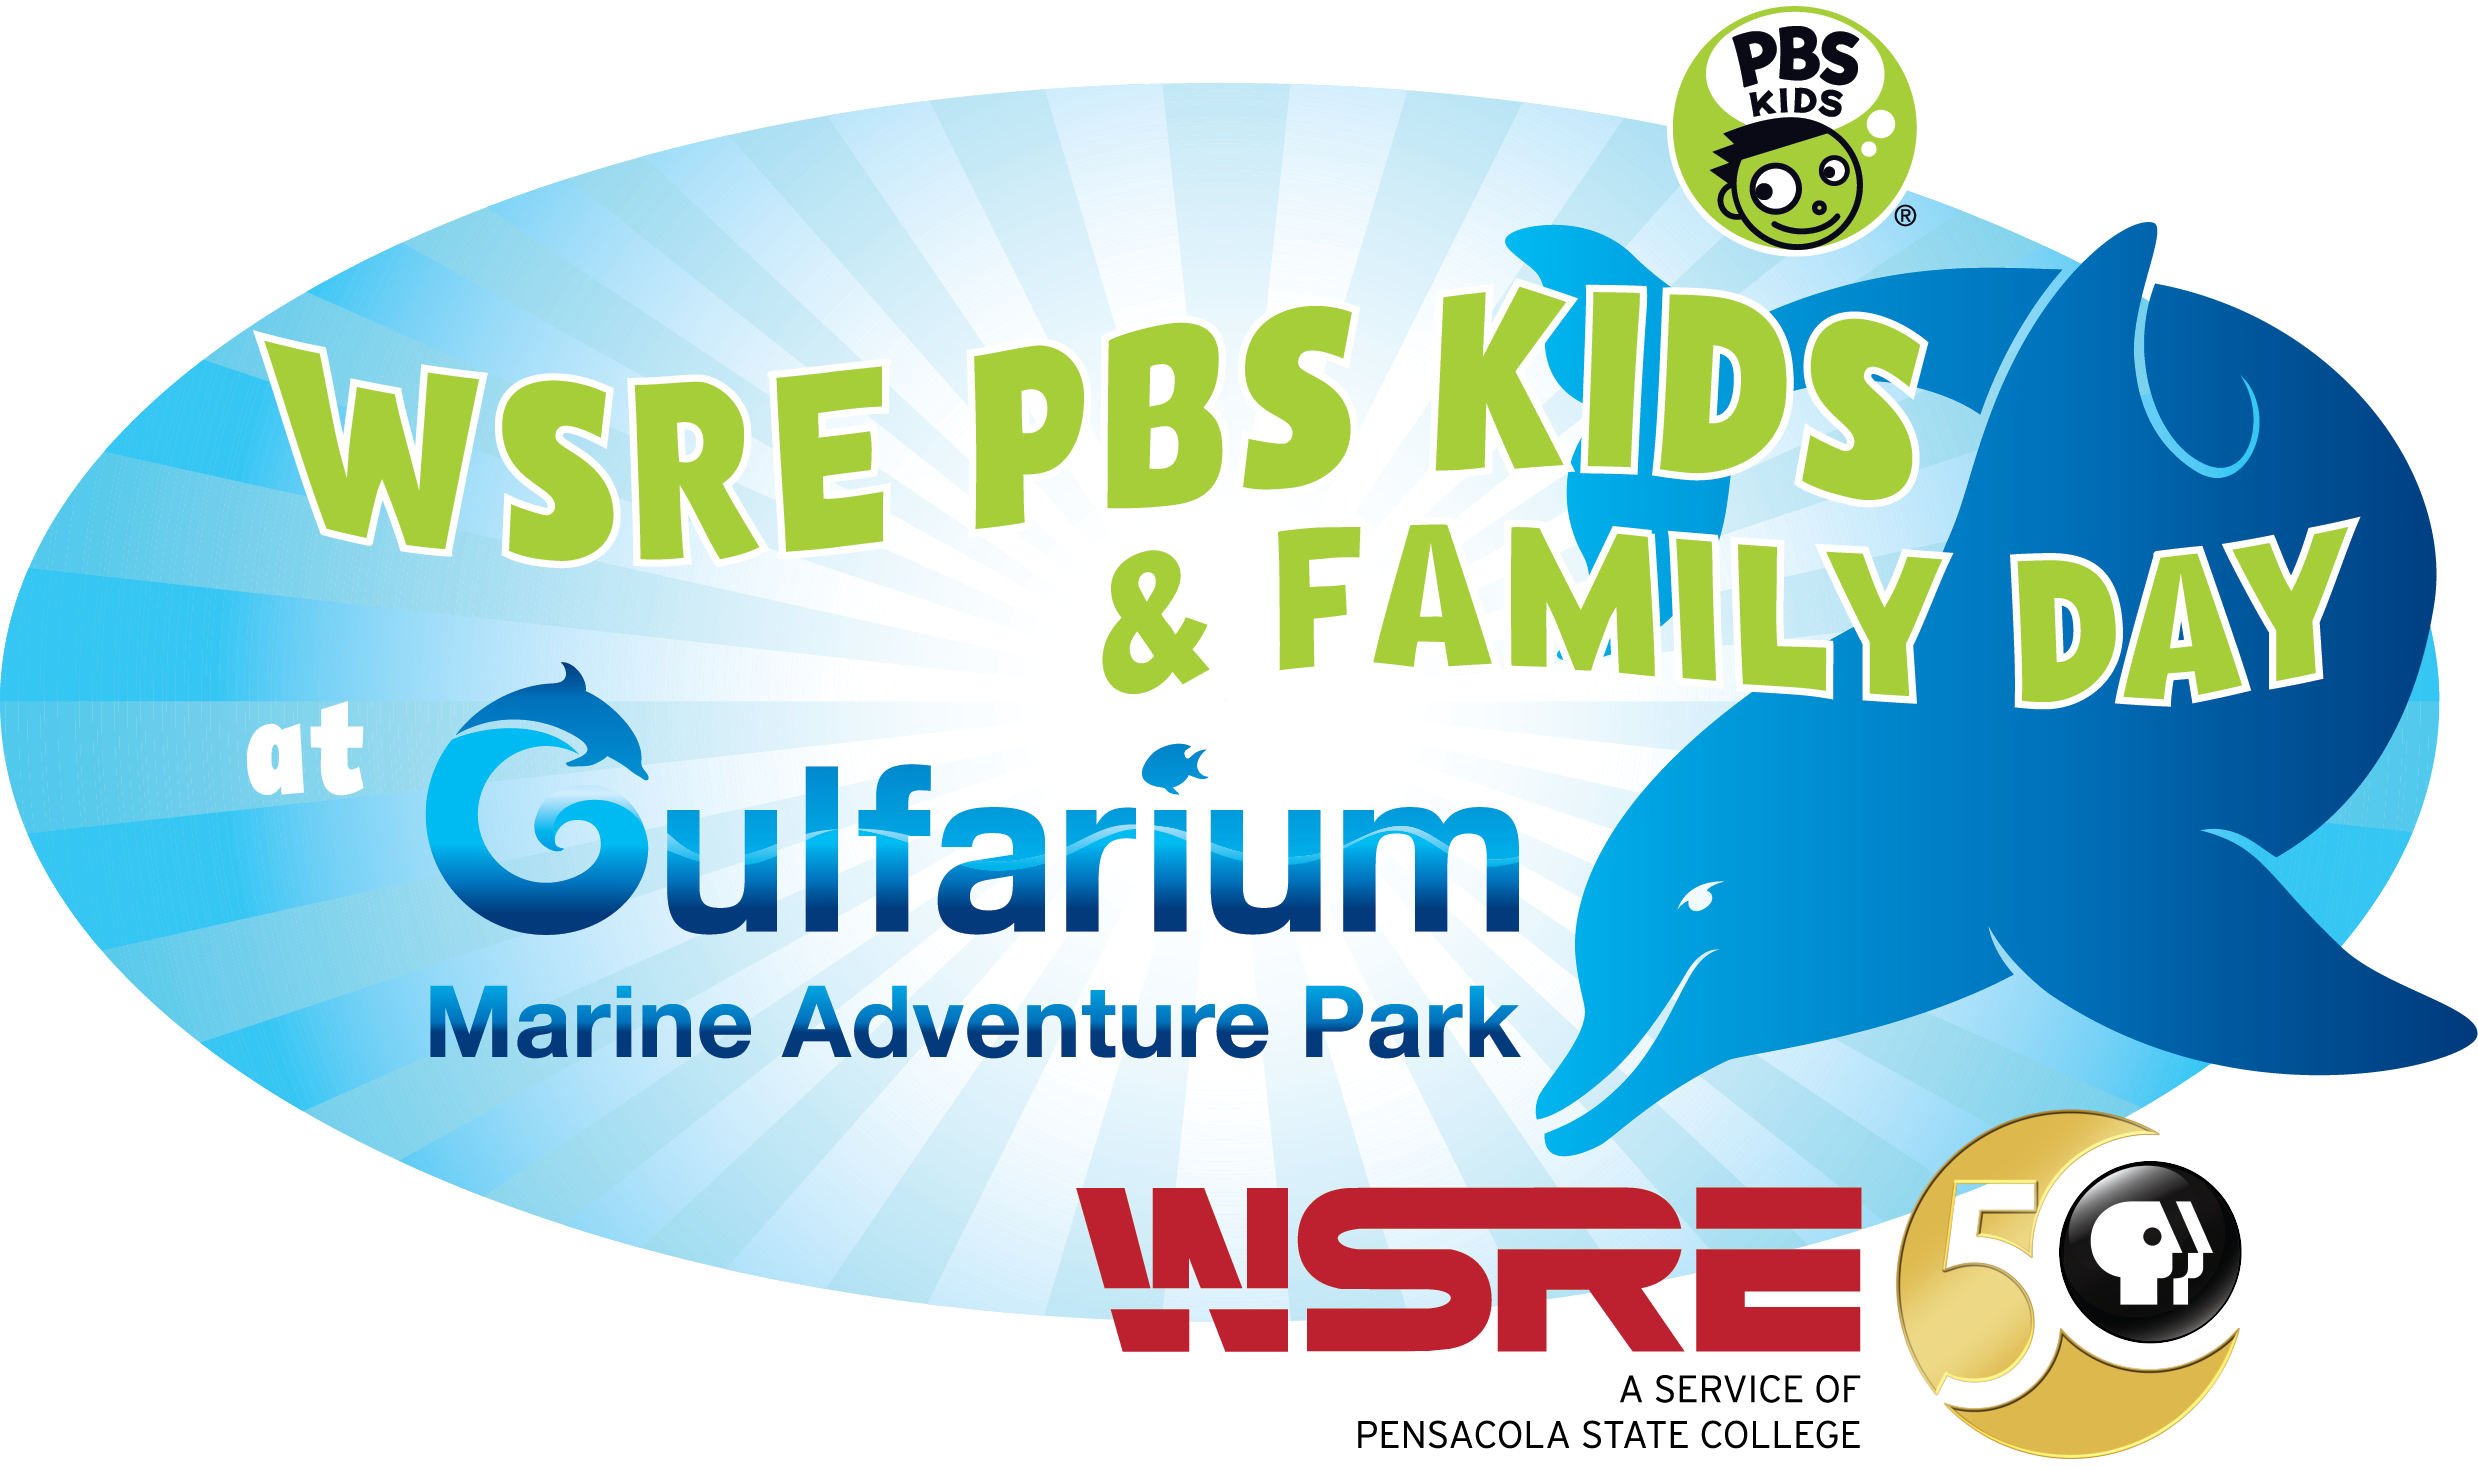 3rd Annual WSRE PBS FAMILY DAY at Gulfarium Marine Adventure Park